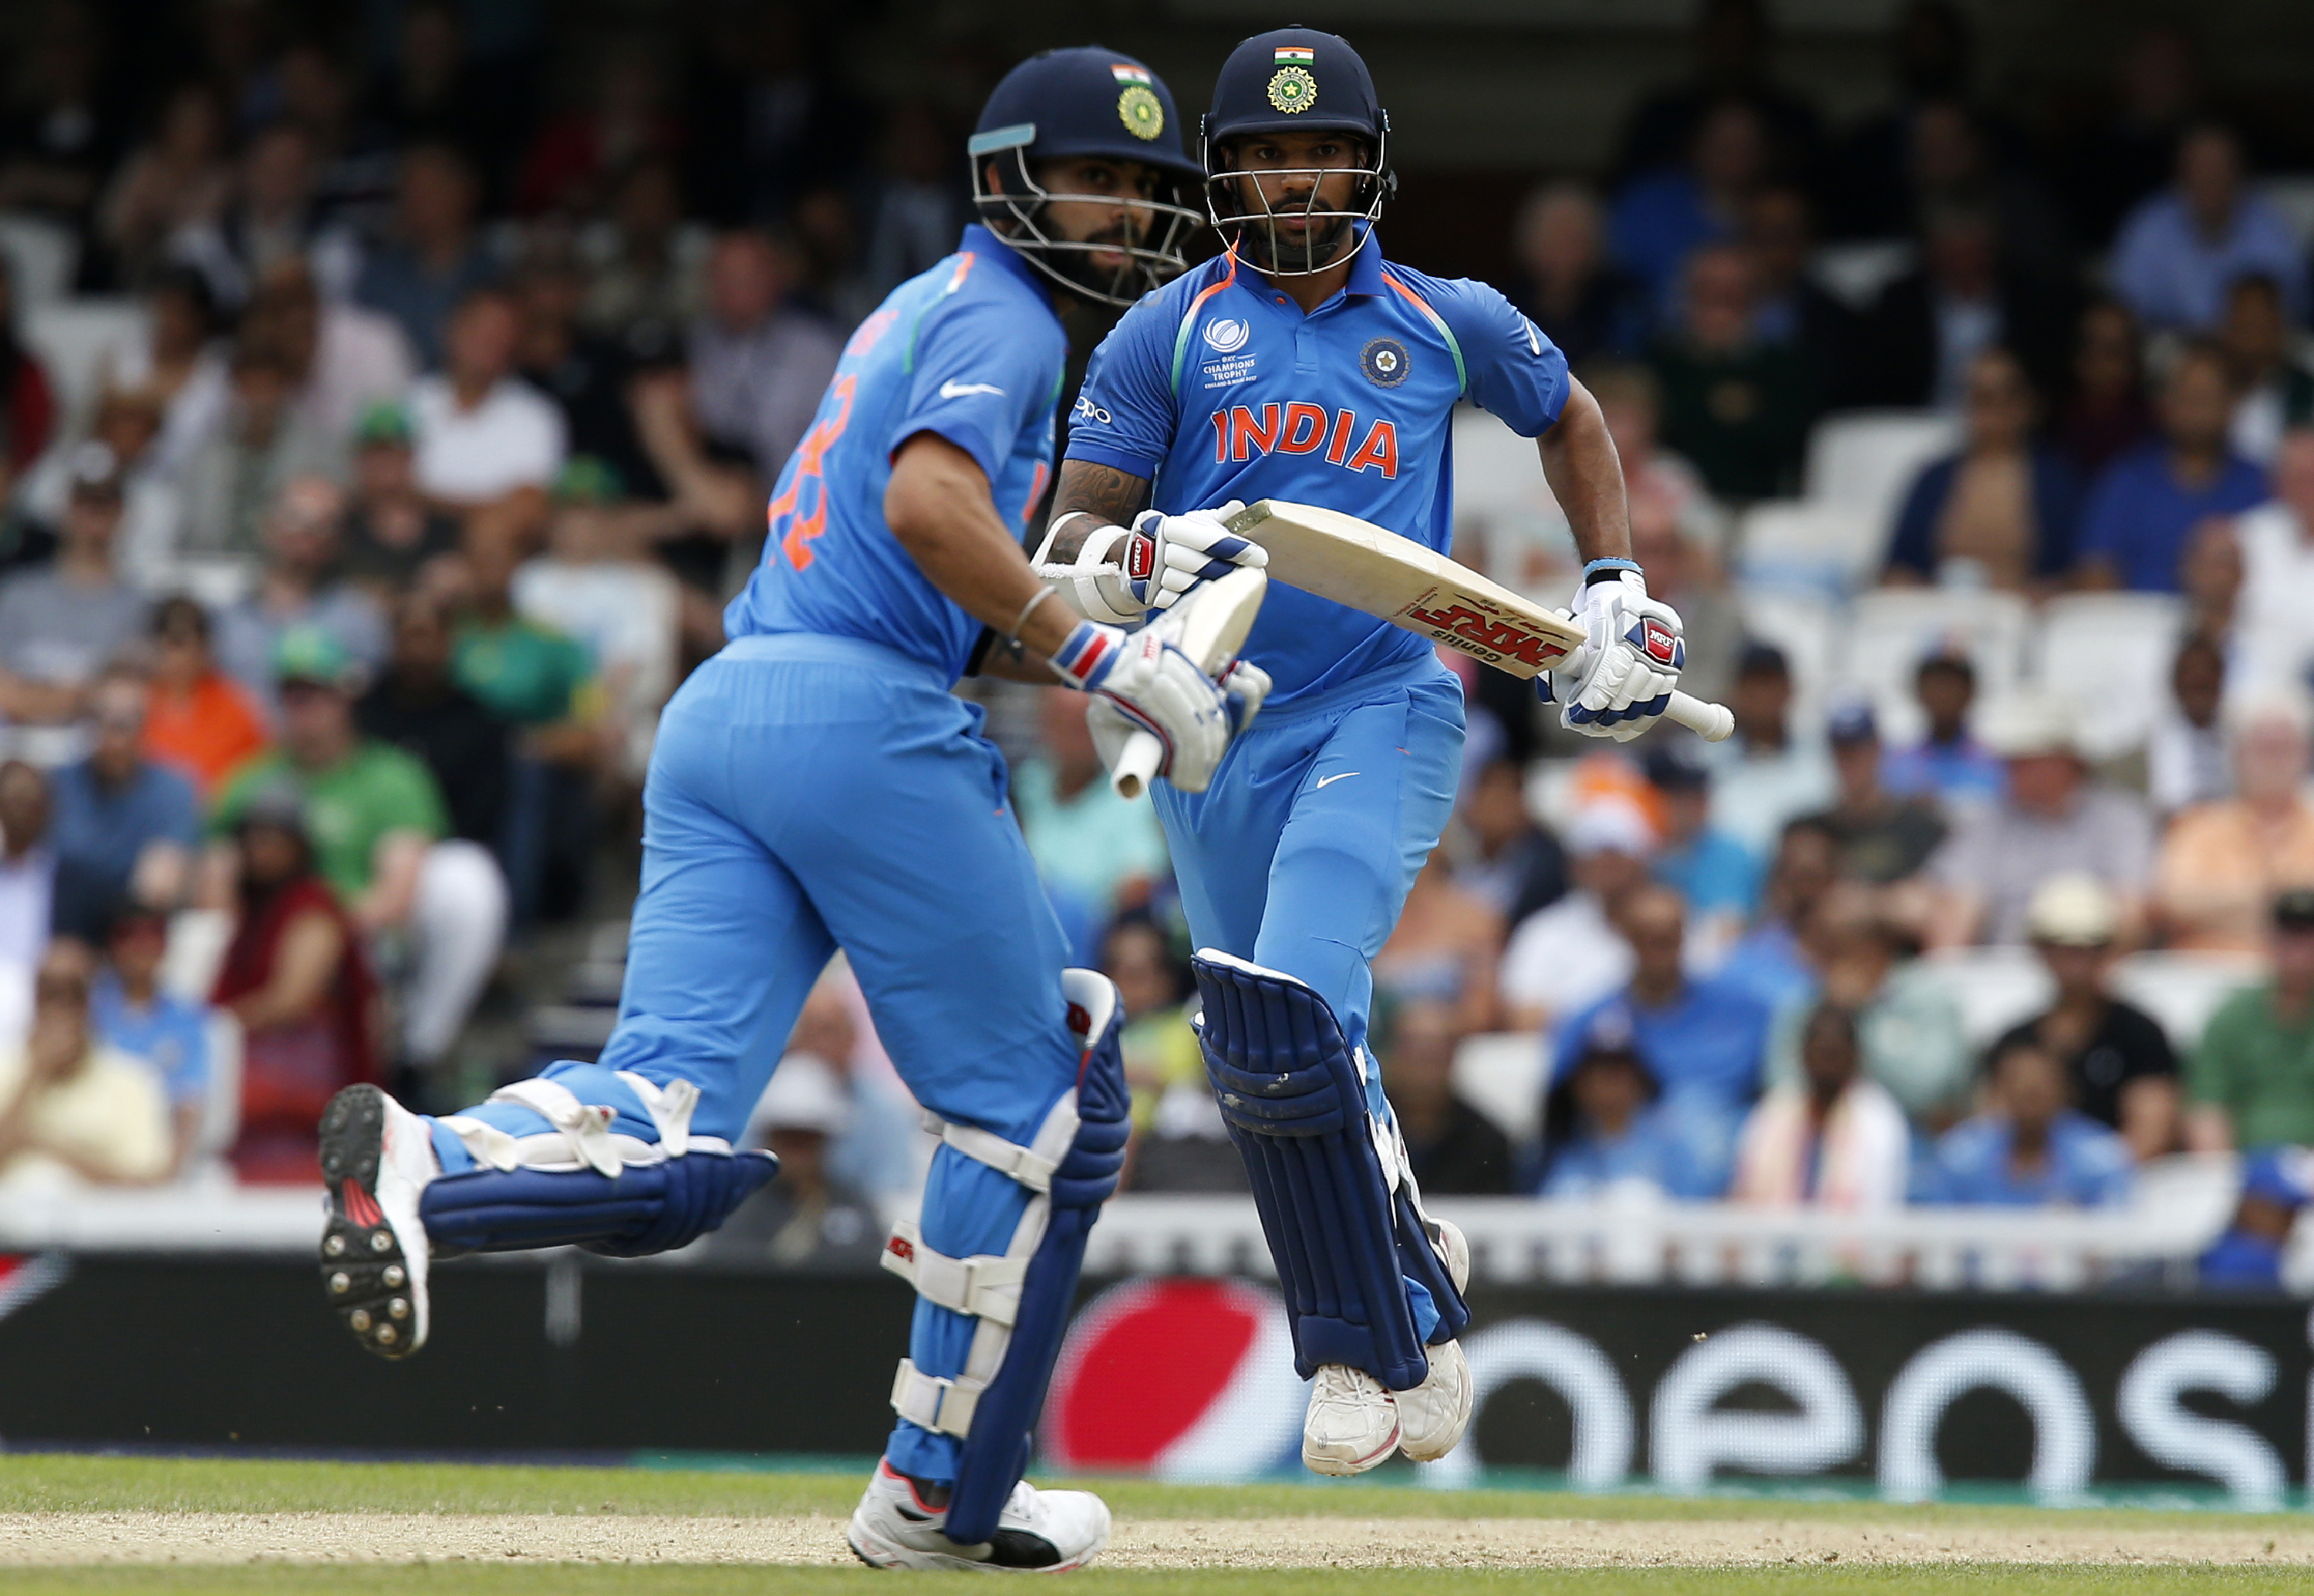 Shikhar Dhawan and Virat Kohli have scored over 75 runs in their partnership for the second wicket. Photo: AFP